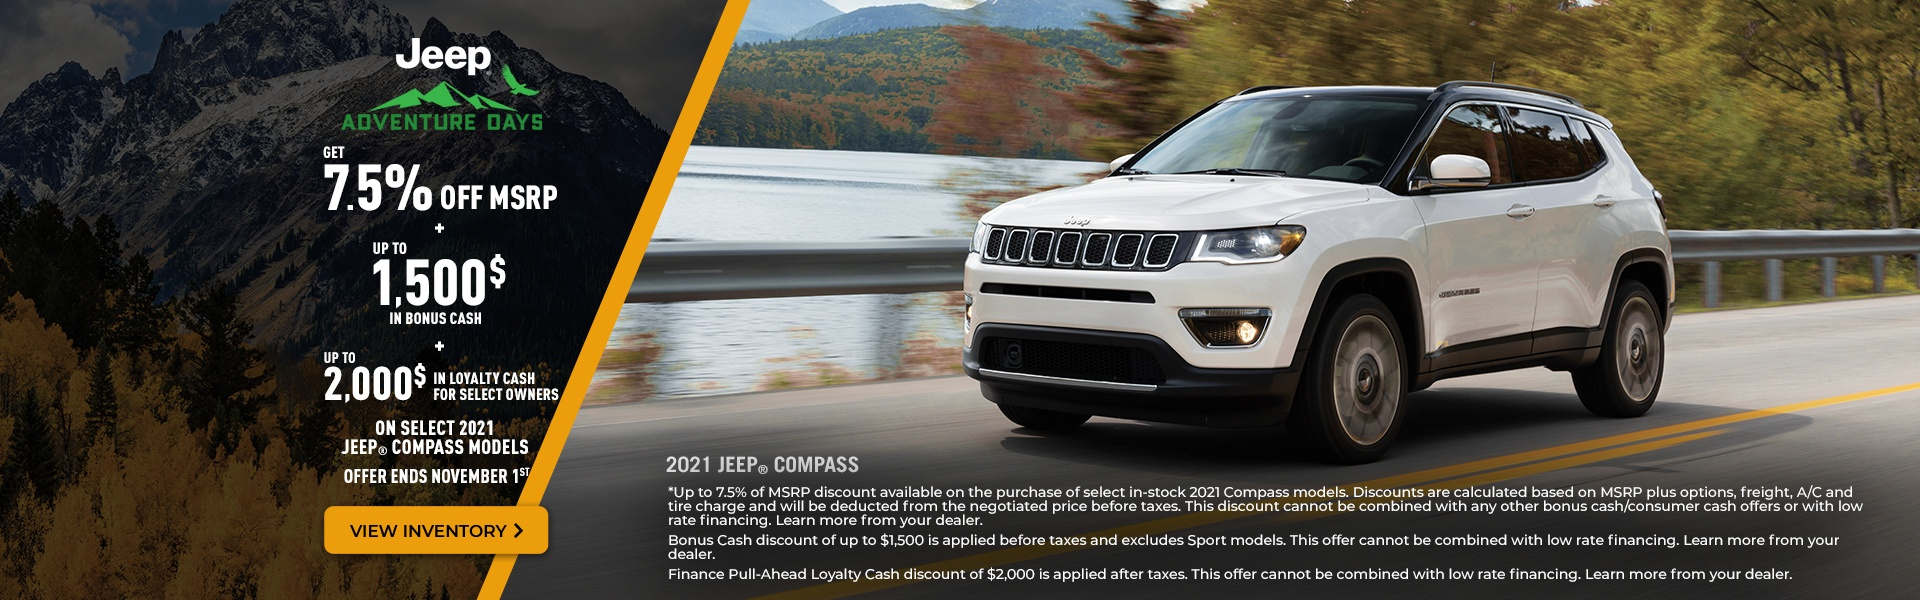 2021 Jeep Compass Promotional Banner